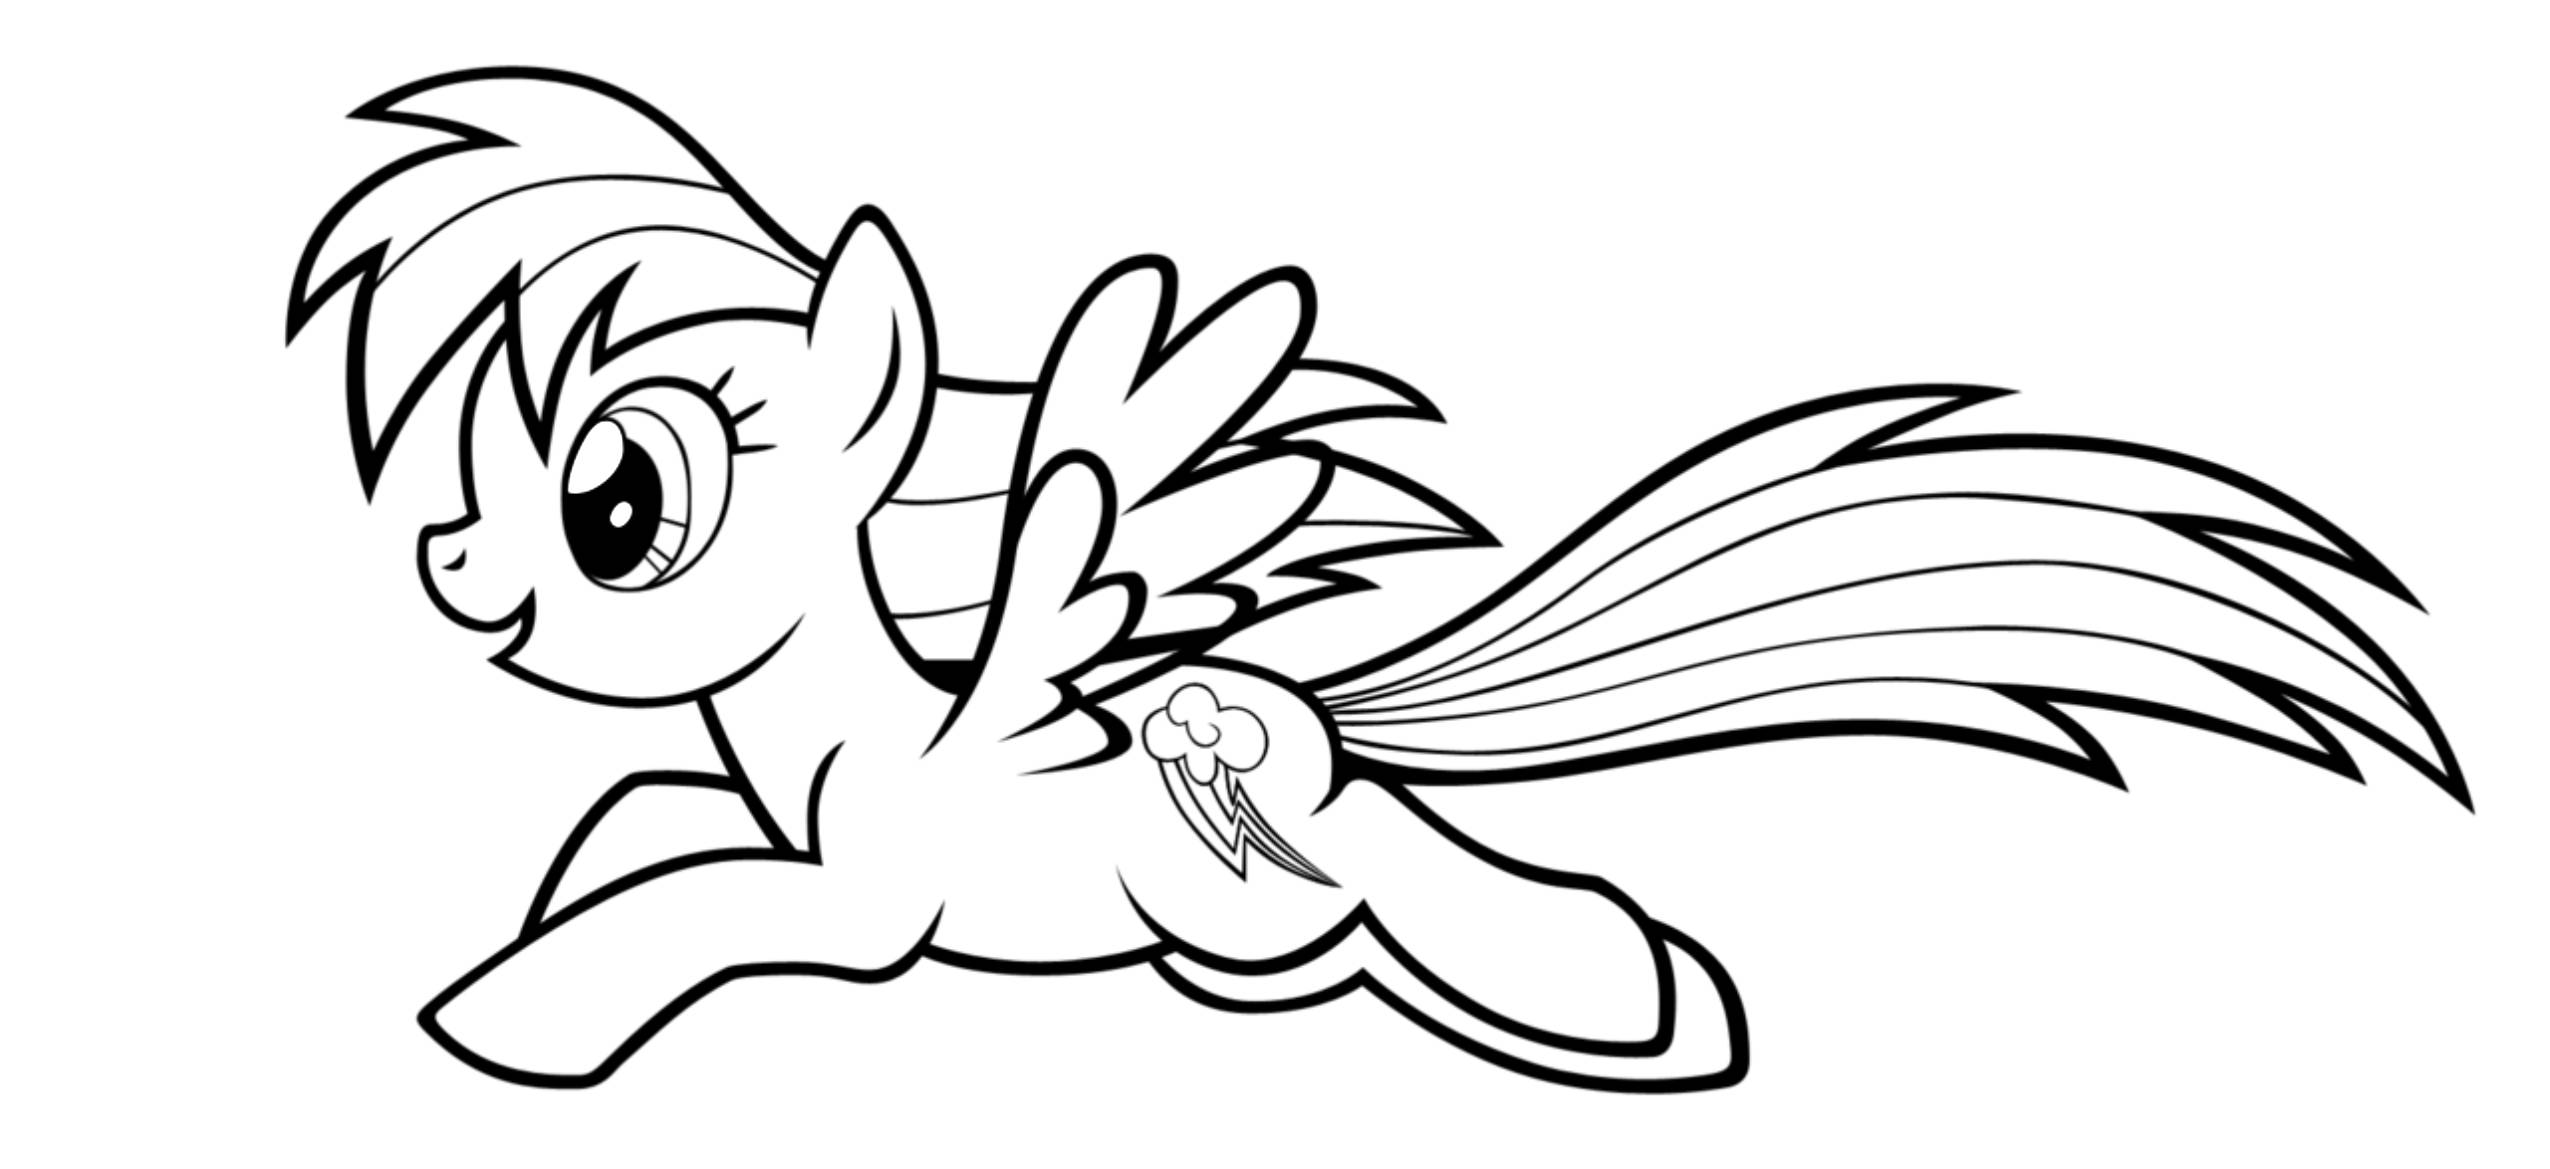 my little pony coloring pages rainbow dash rainbow dash coloring pages team colors pages dash rainbow pony coloring little my